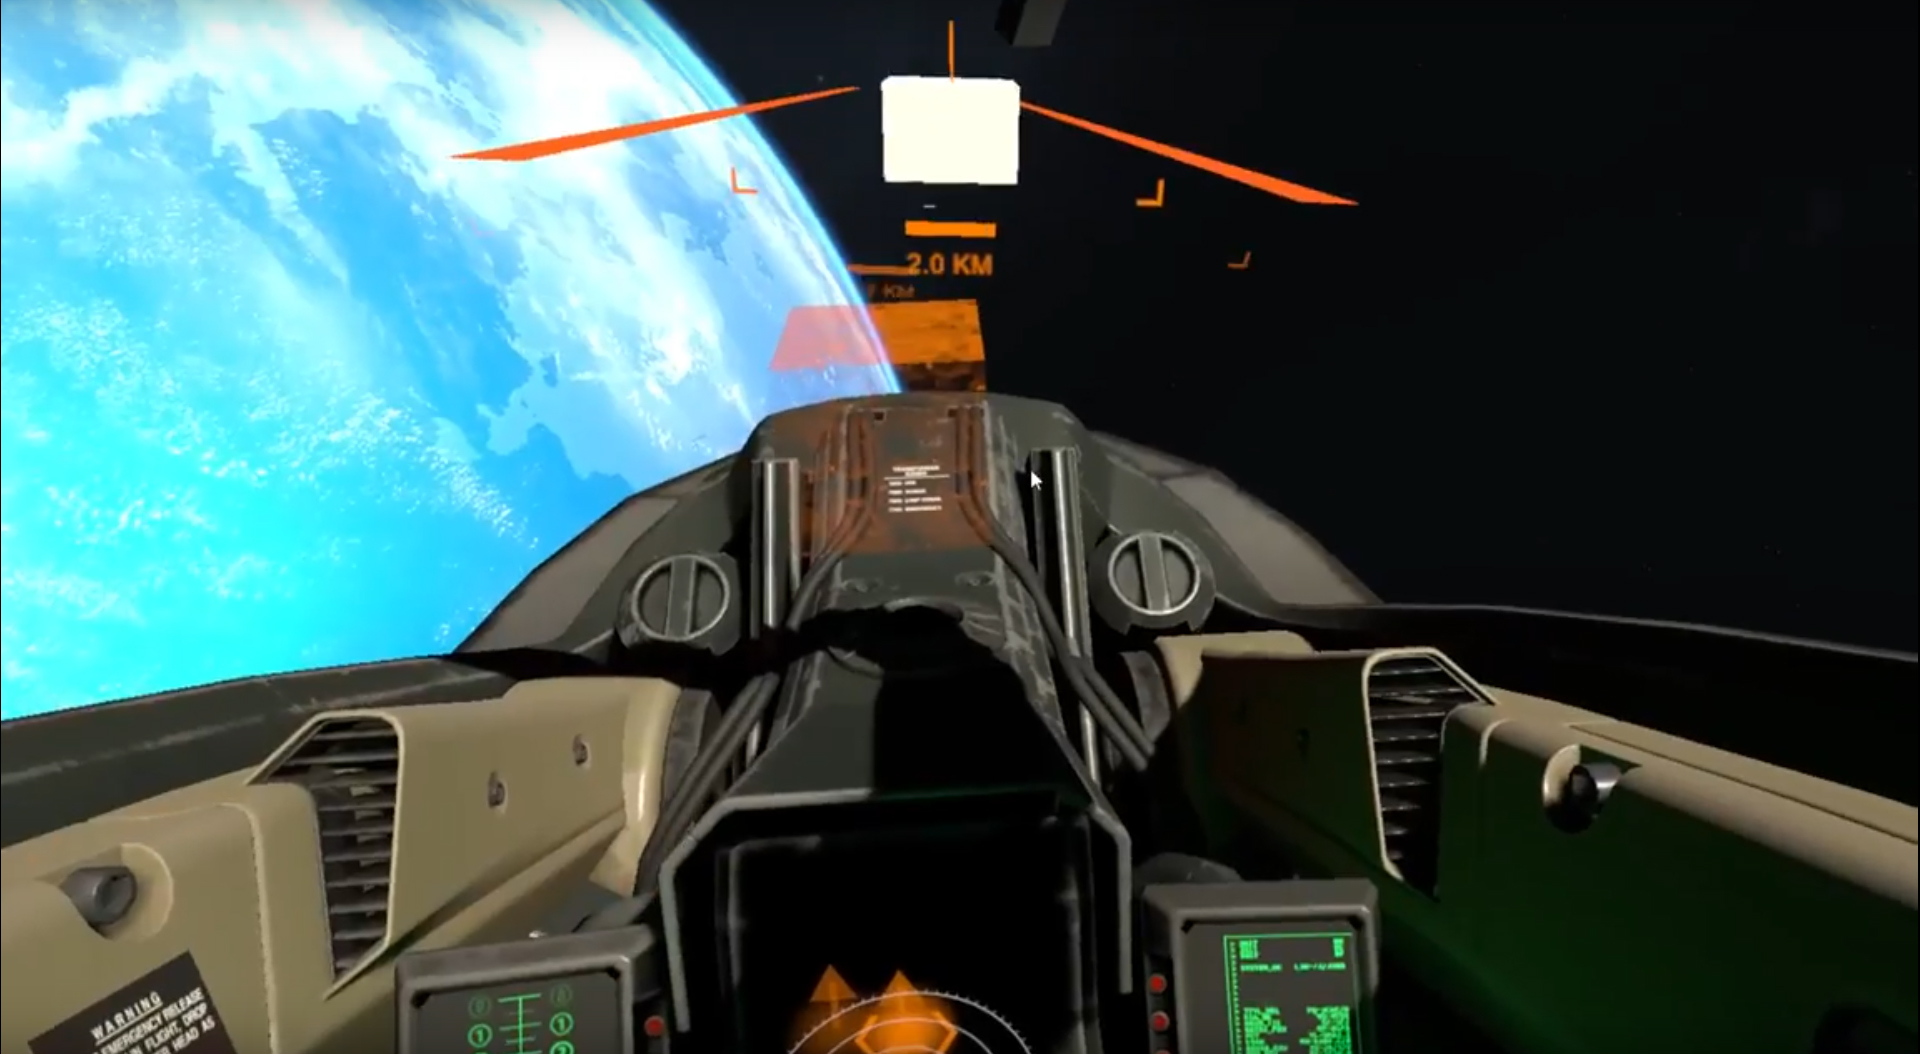 Cold Star Eclipse: VR Gameplay prototype